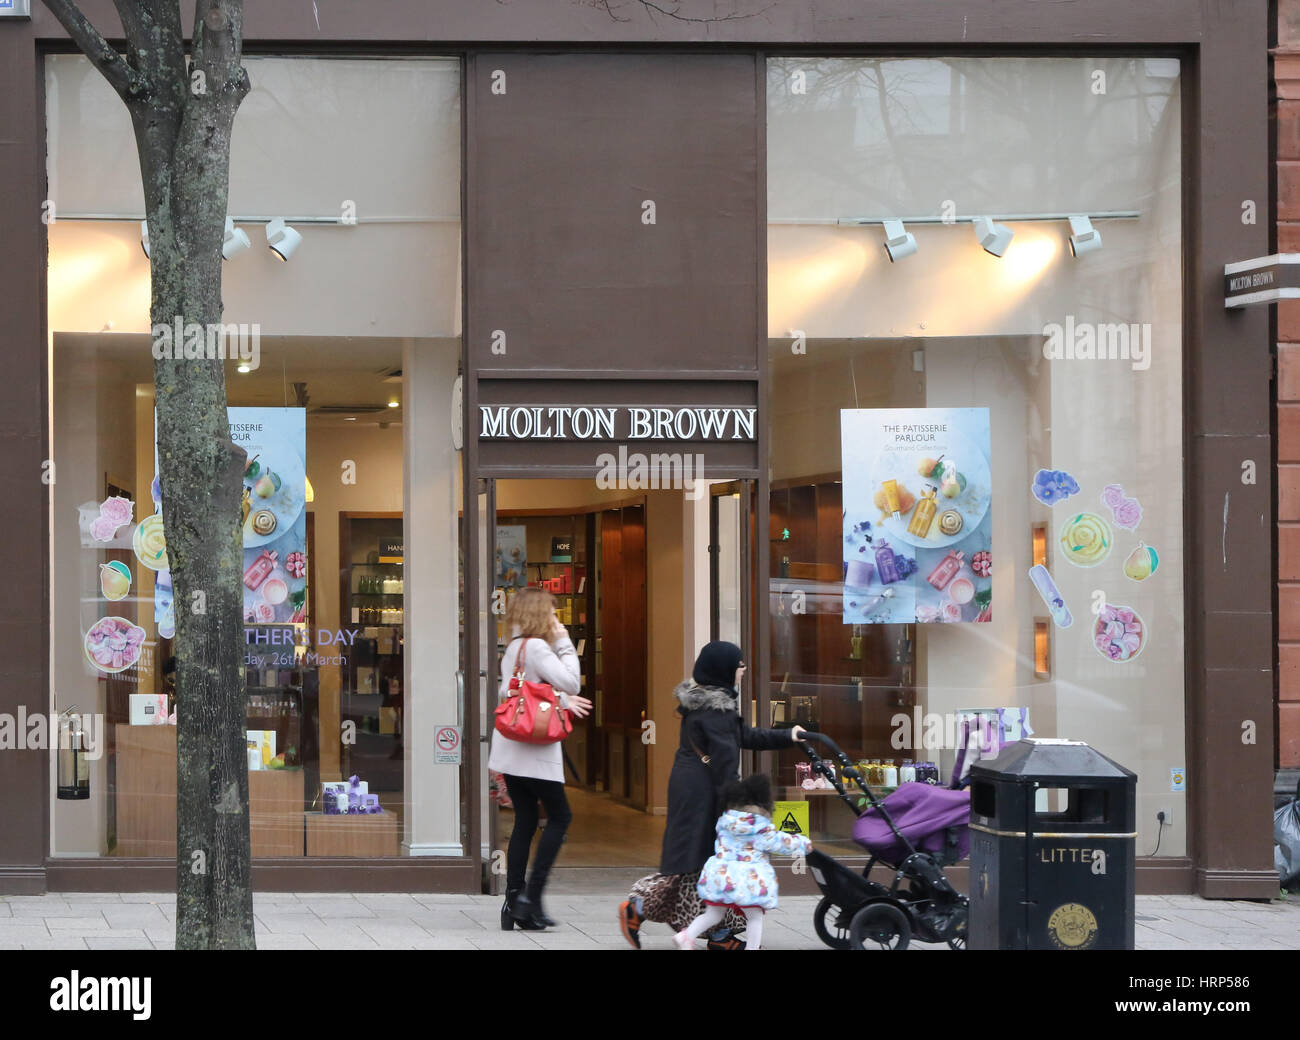 A Molton Brown shop in Donegall Square North, Belfast, Northern Ireland. - Stock Image